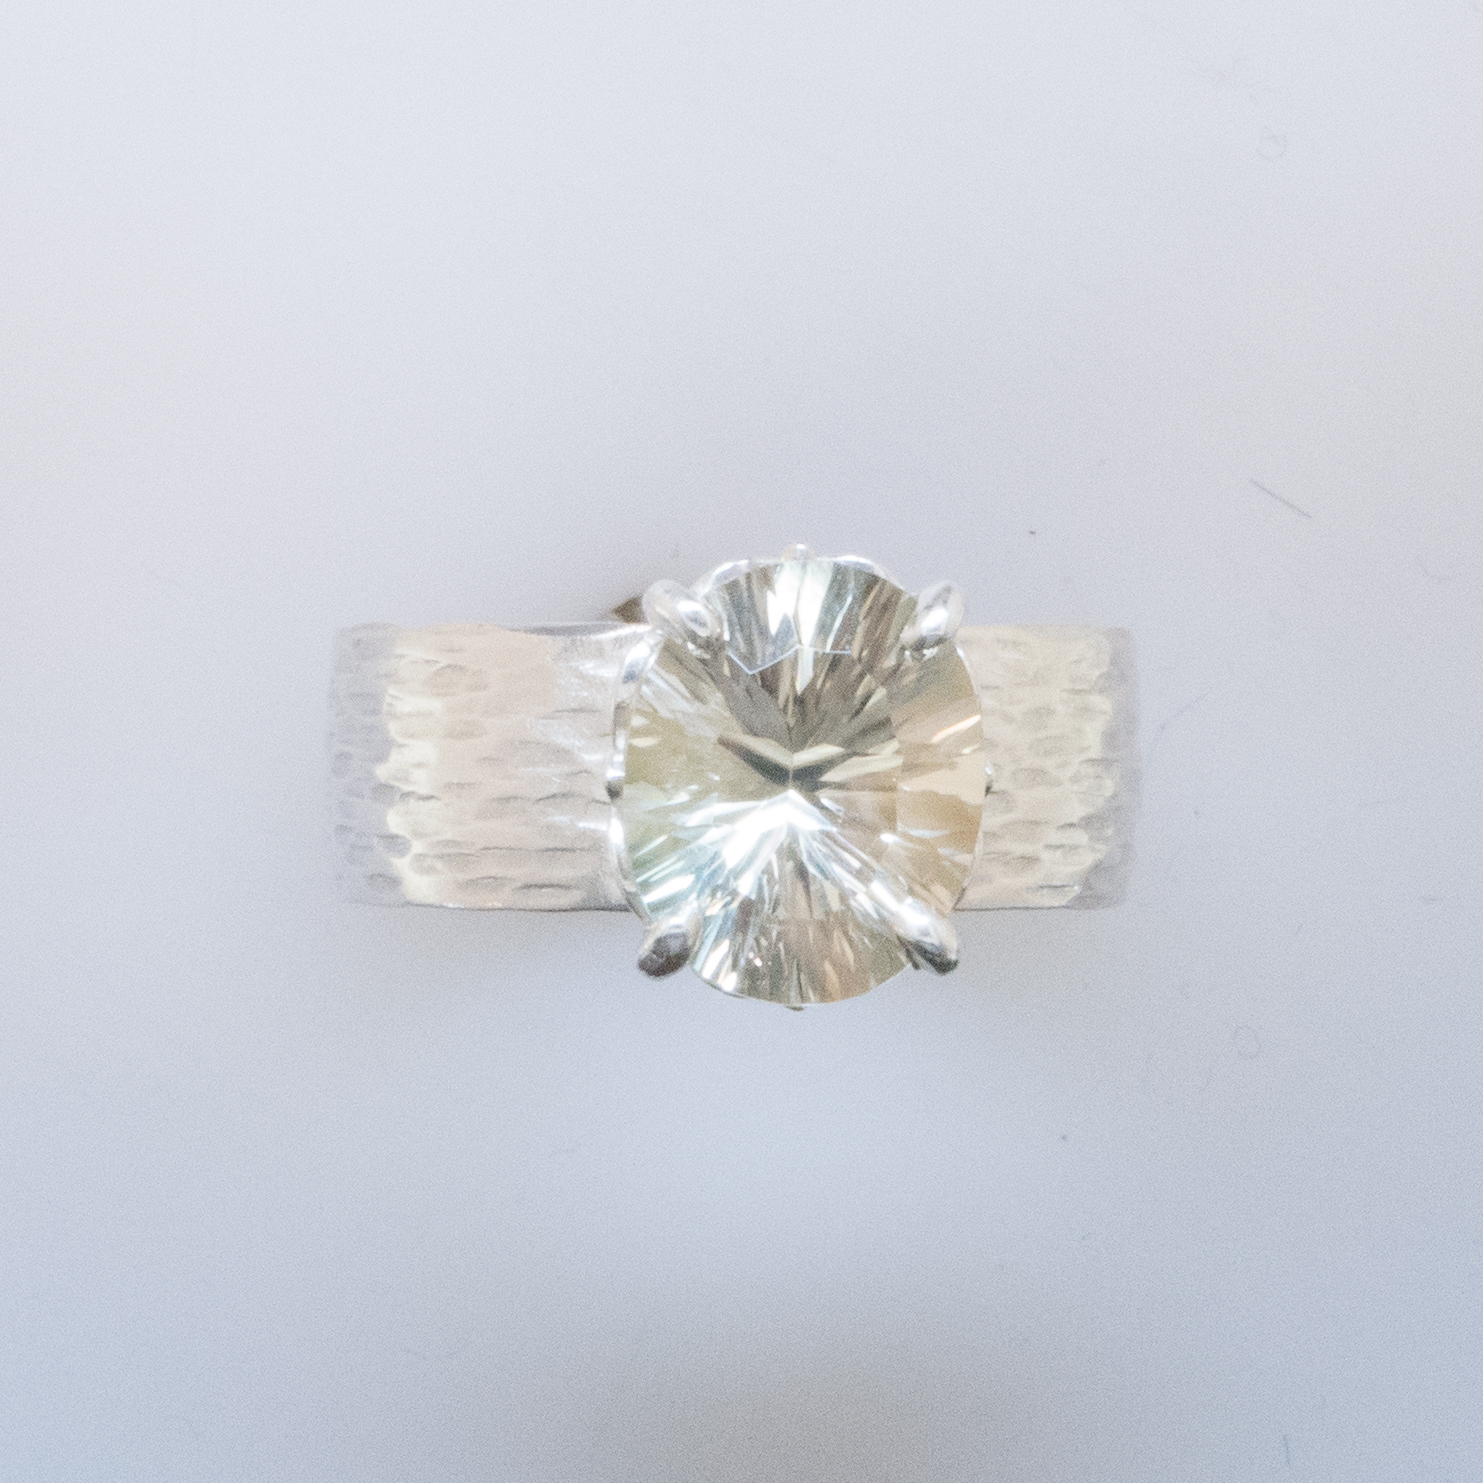 Champagne Sunstone Ring